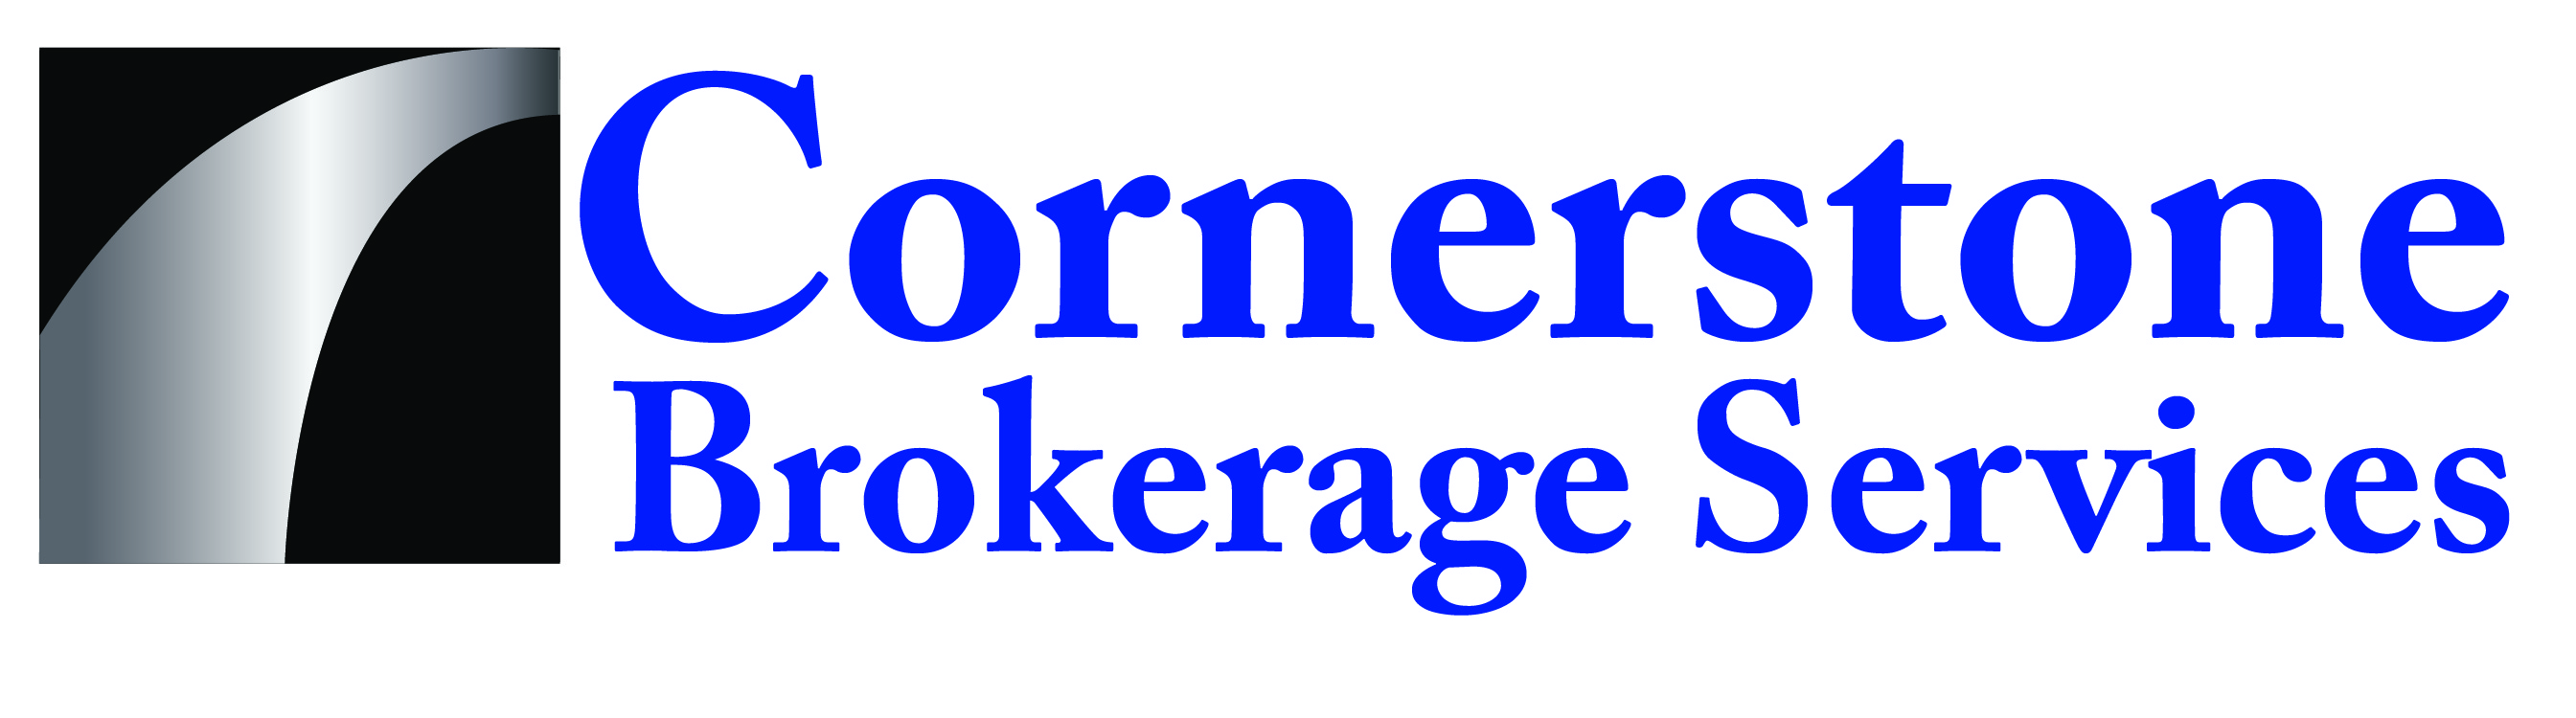 Cornerstone Brokerage Services